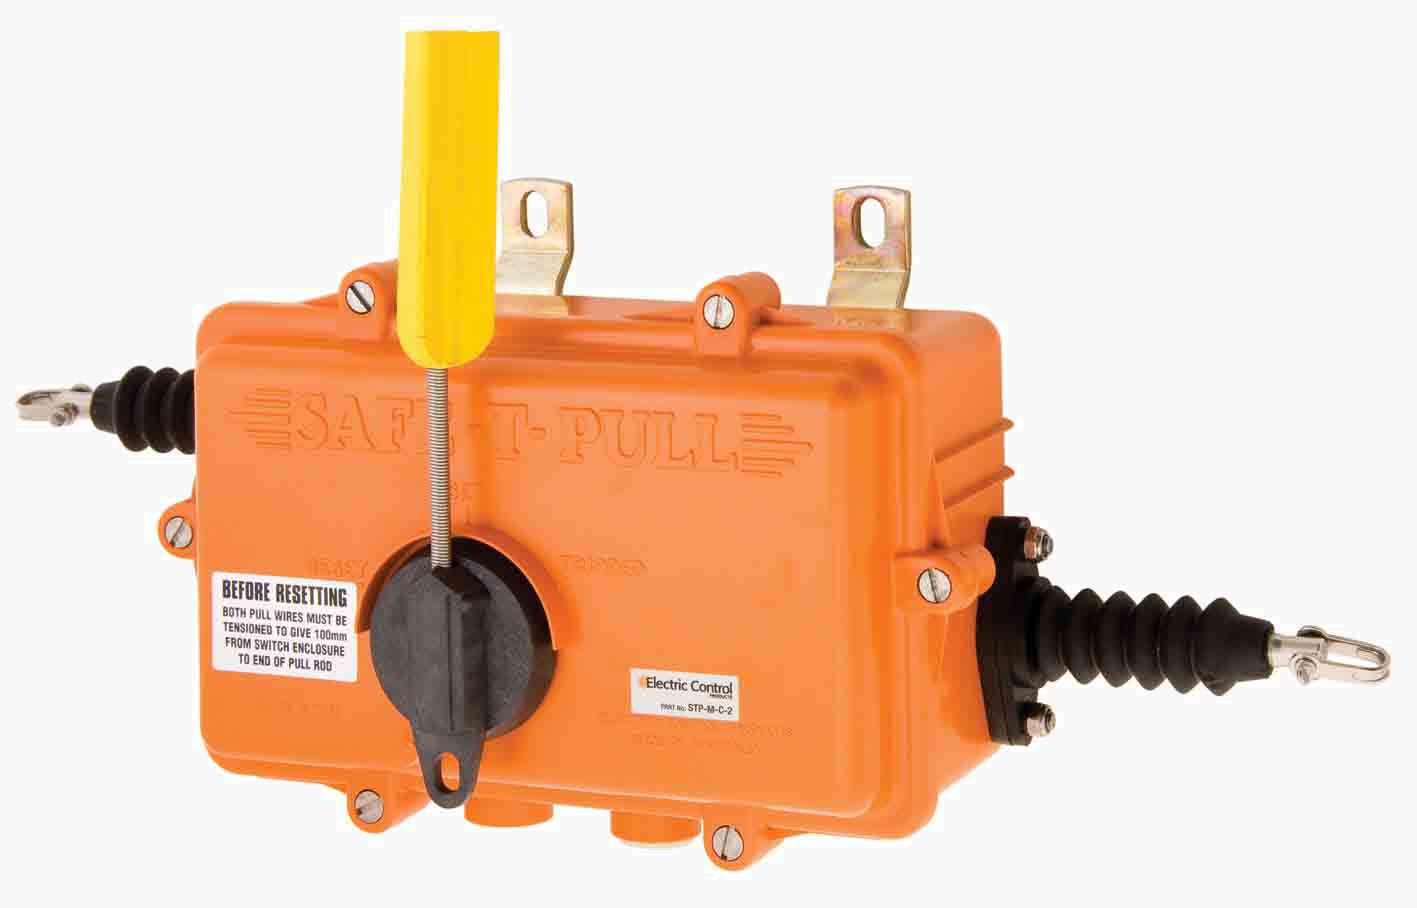 Safe-T-Pull (Static Dissipative/10^9Ω Surface Resistivity).